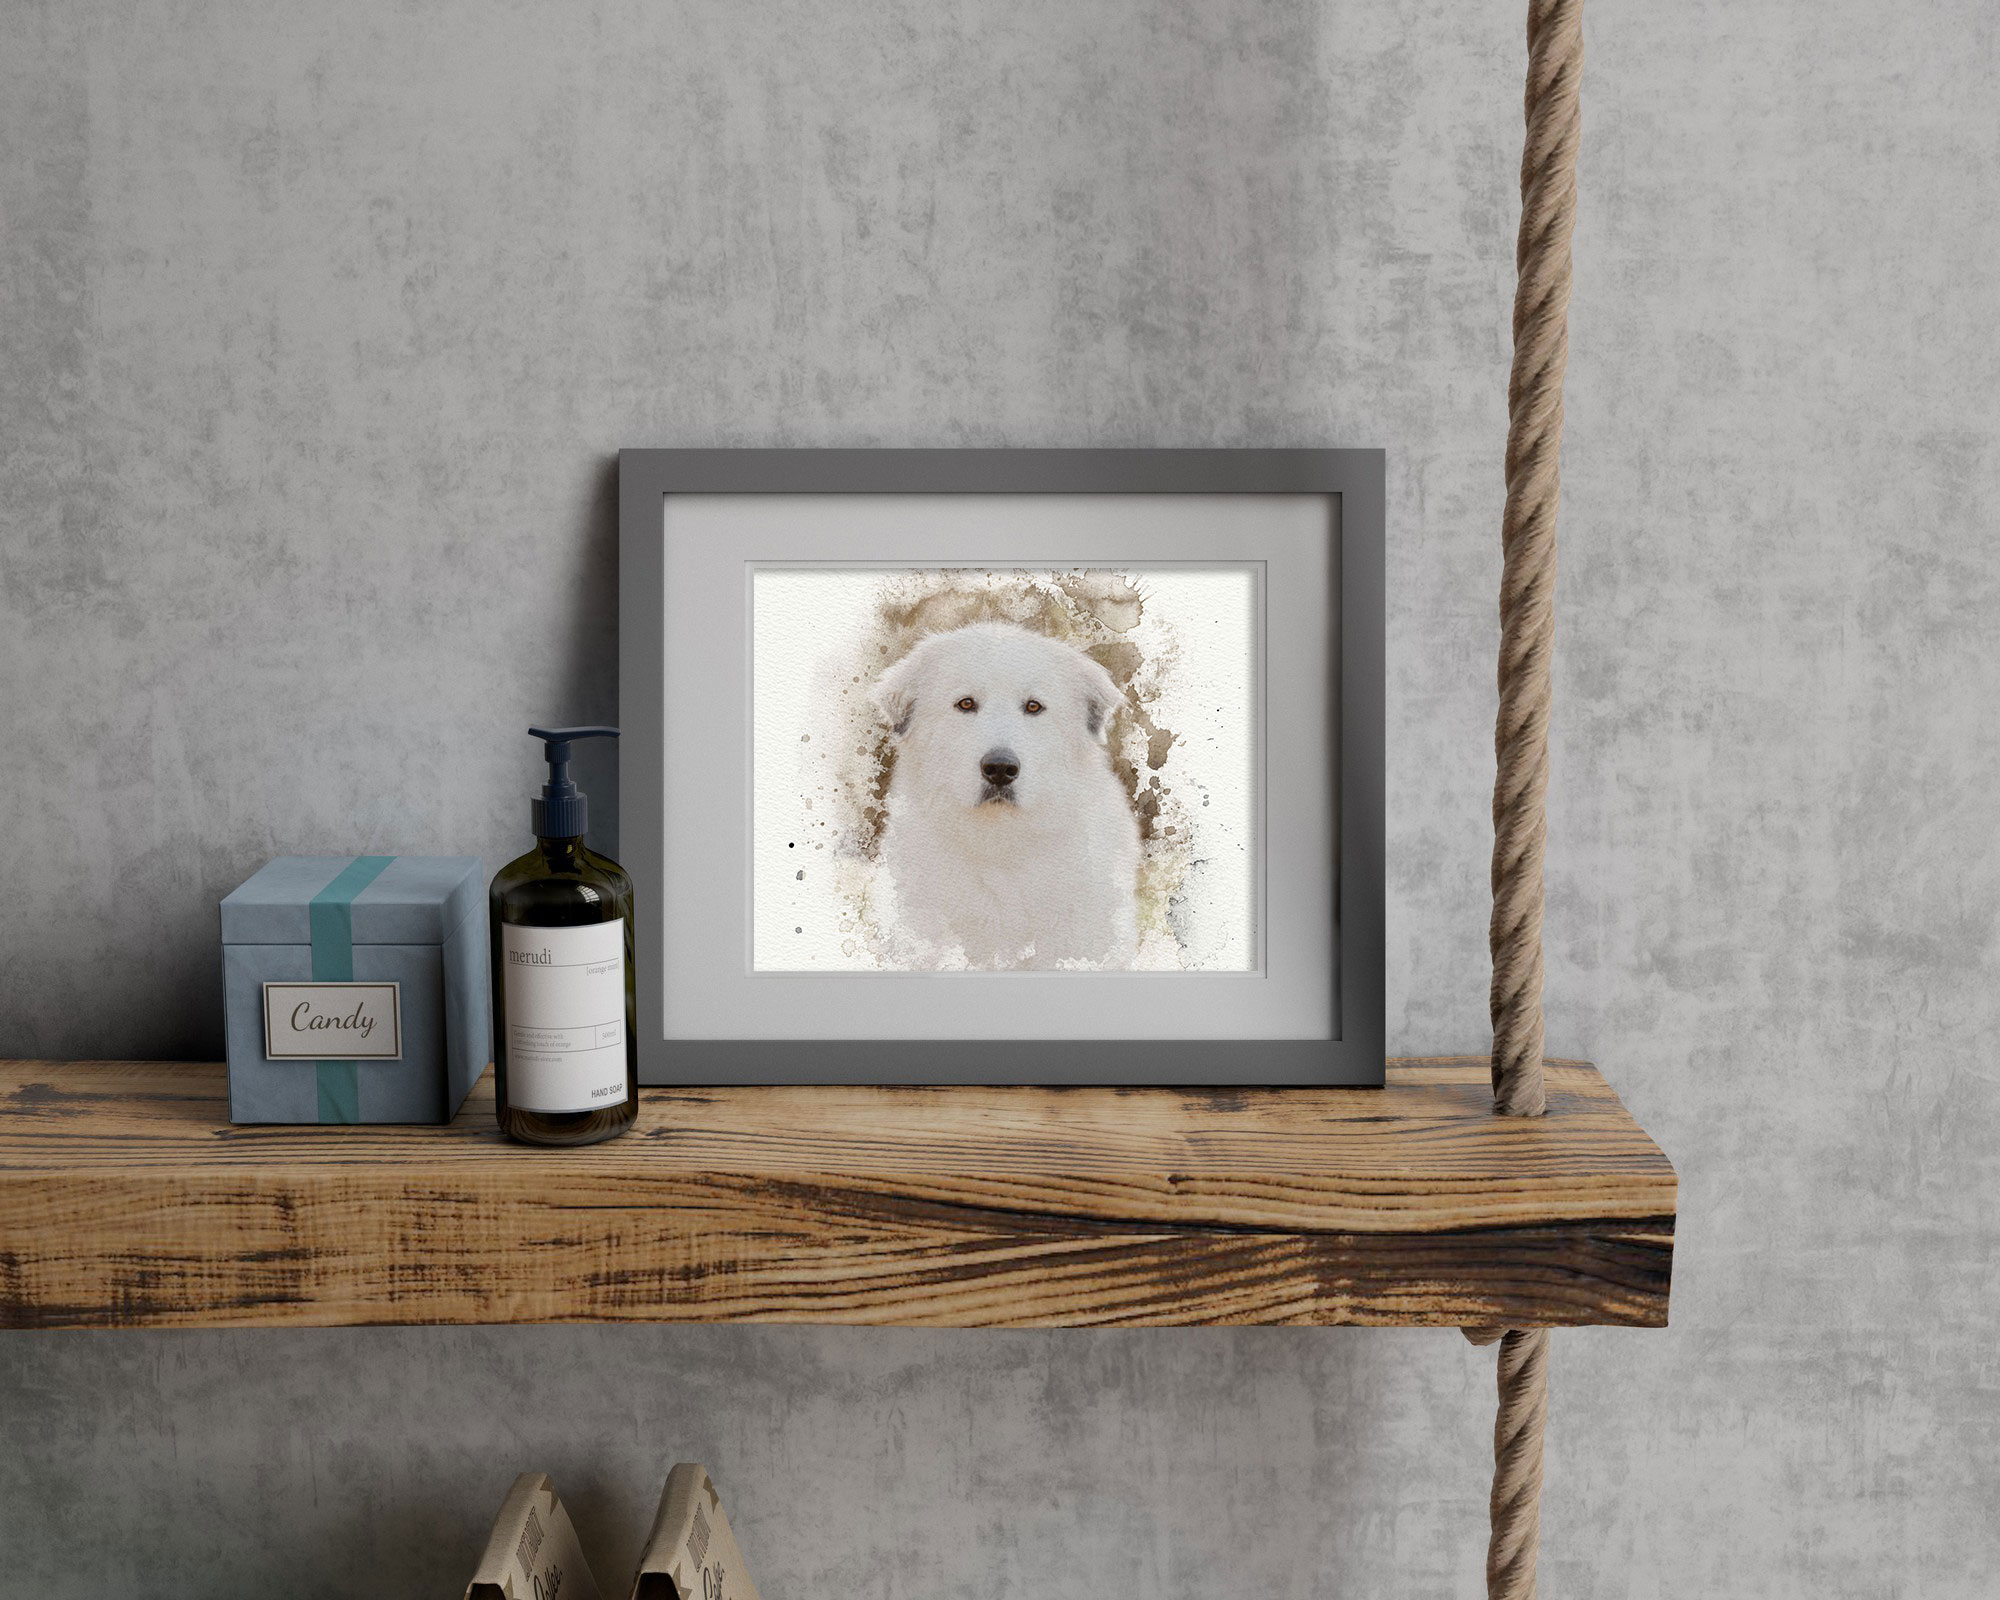 Adding dog photography to shelves is an unique way to decorate your home with personal art from dog photographer Courtney Bryson